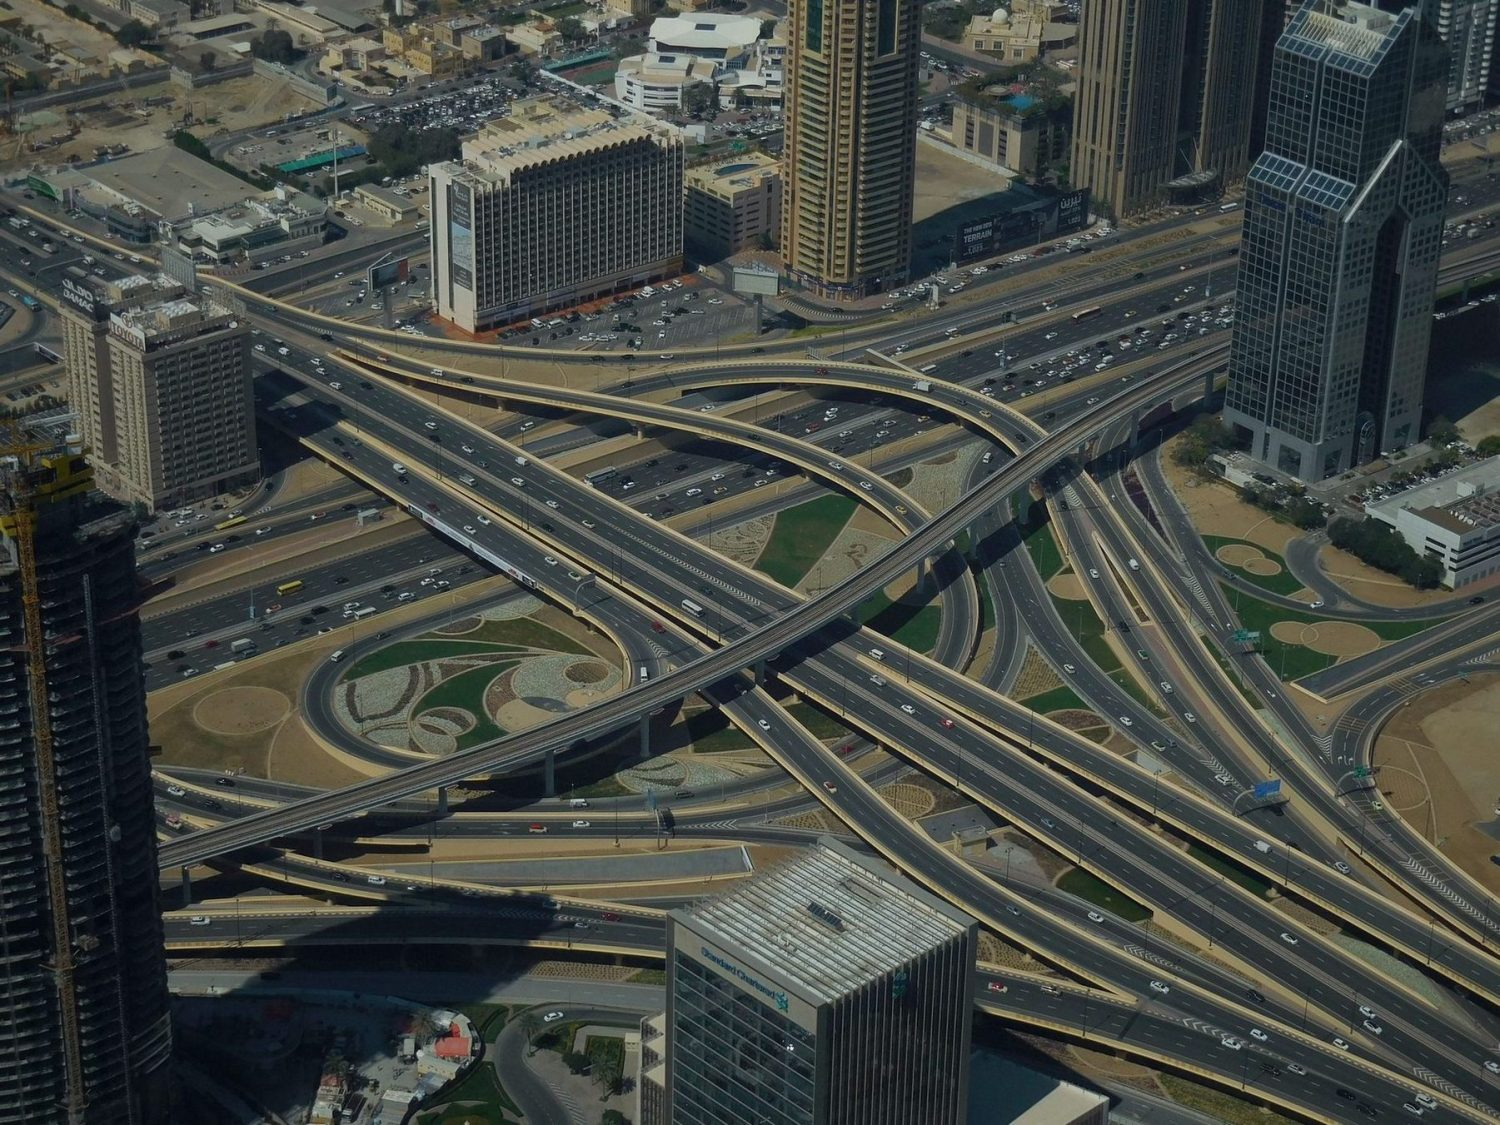 Dubai, Burj Khalifa, Crossroads in the Desert, UAE